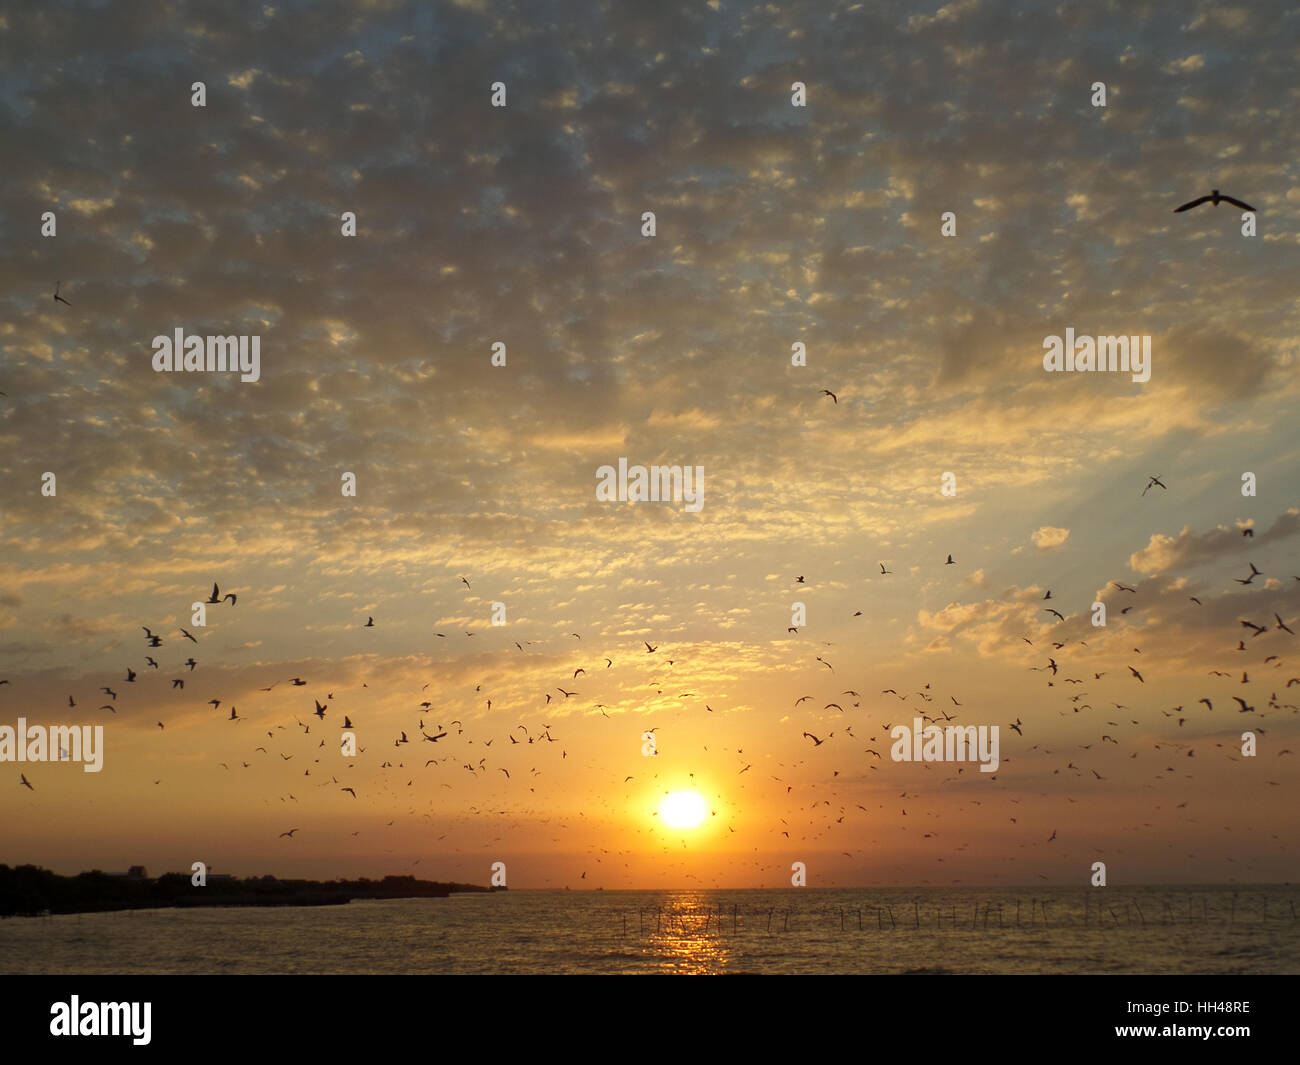 Stunning view of many flying Seagulls against the rising sun over the placid sea, Gulf of Thailand - Stock Image